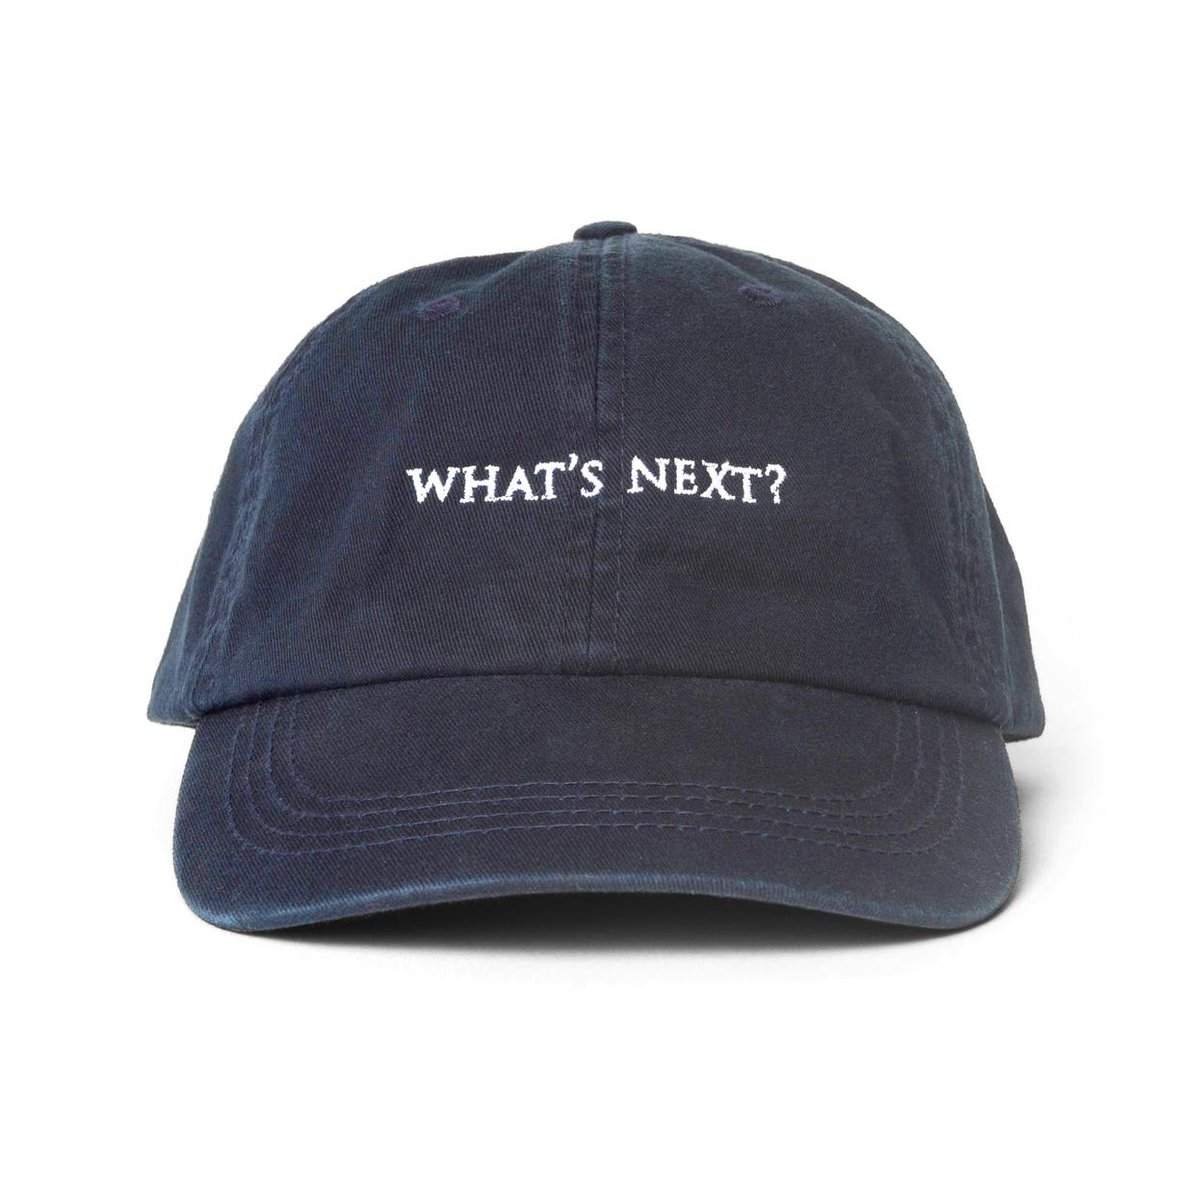 In honor of the end of Season 6, weve brought back ALL of our merch! Everything is available to order, and will be for the rest of the month, at thewestwingweekly.com/merch.